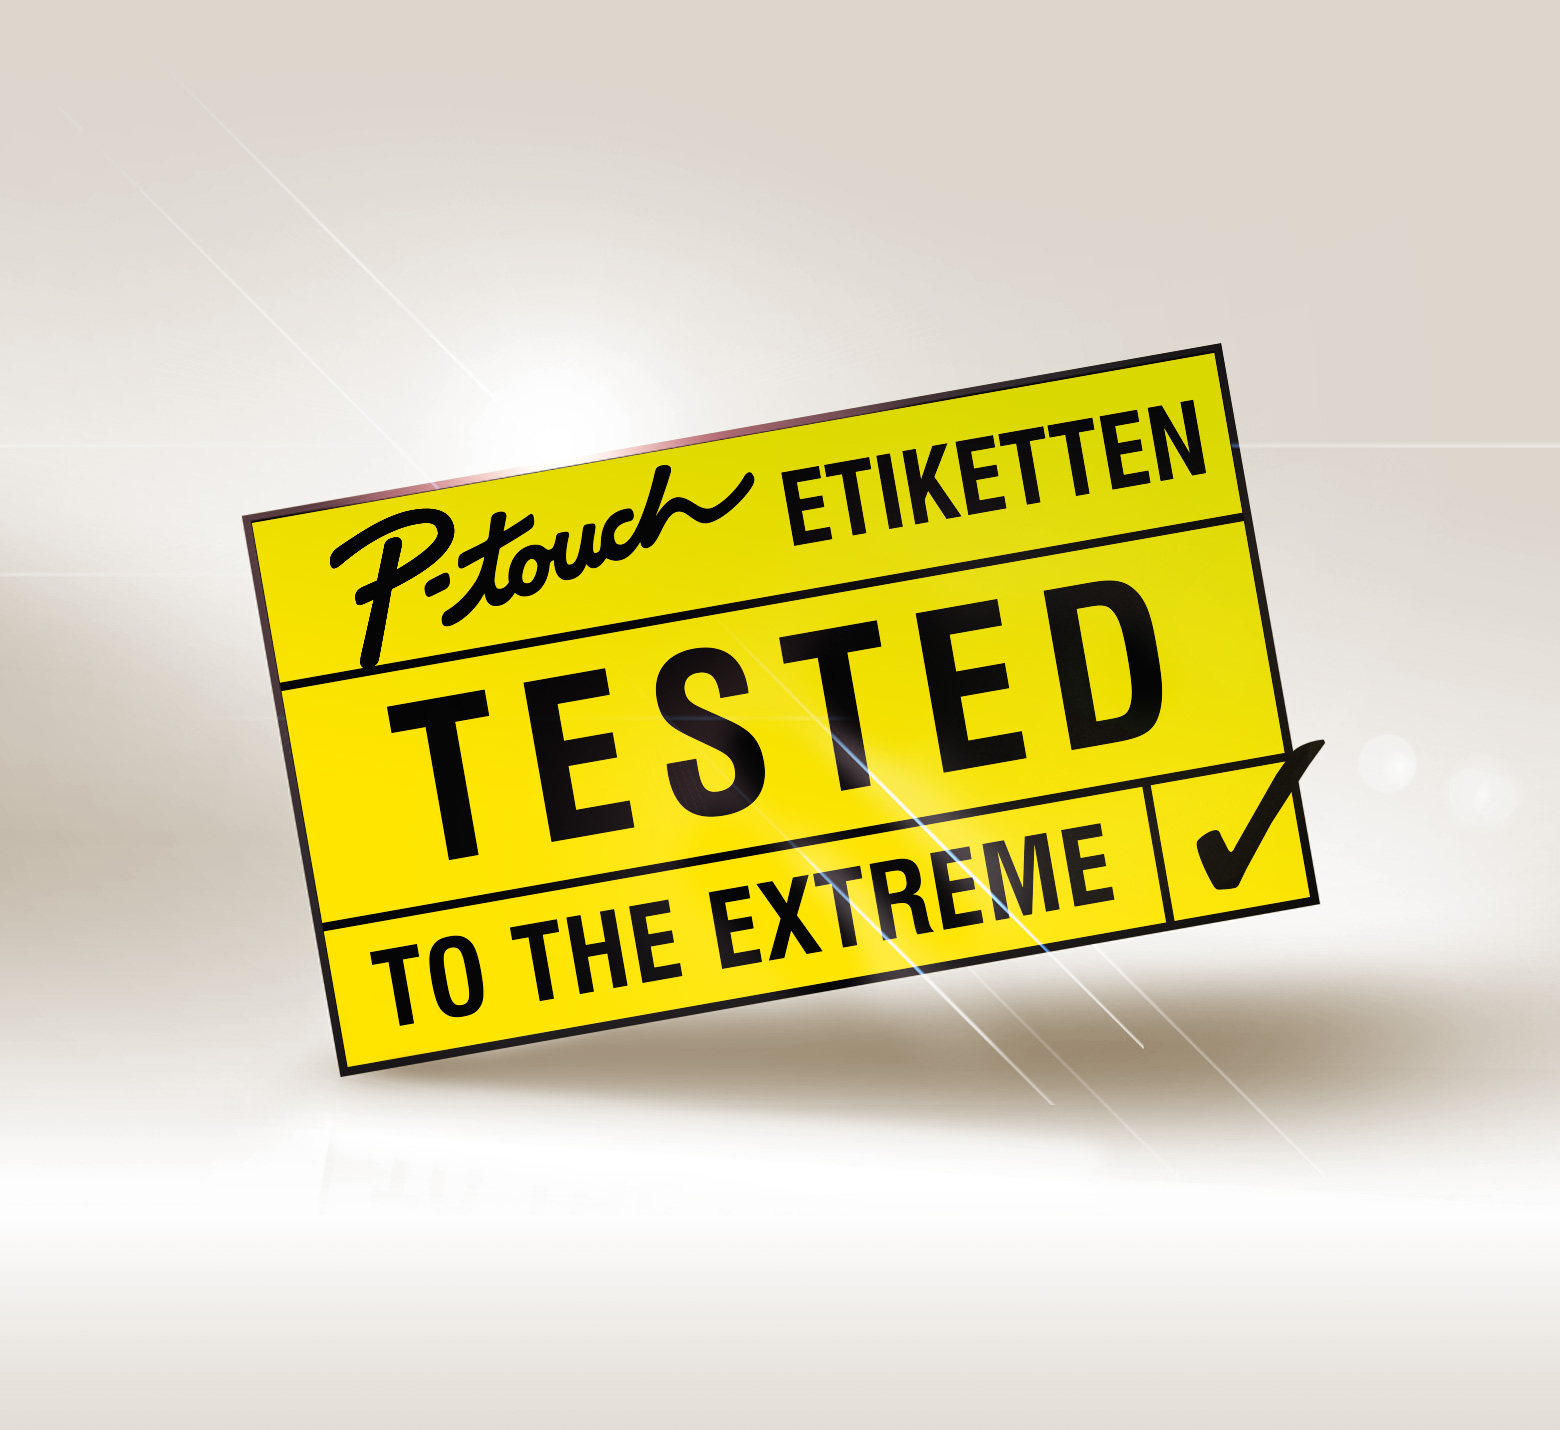 info-tile-product-beschriften-tested-extreme